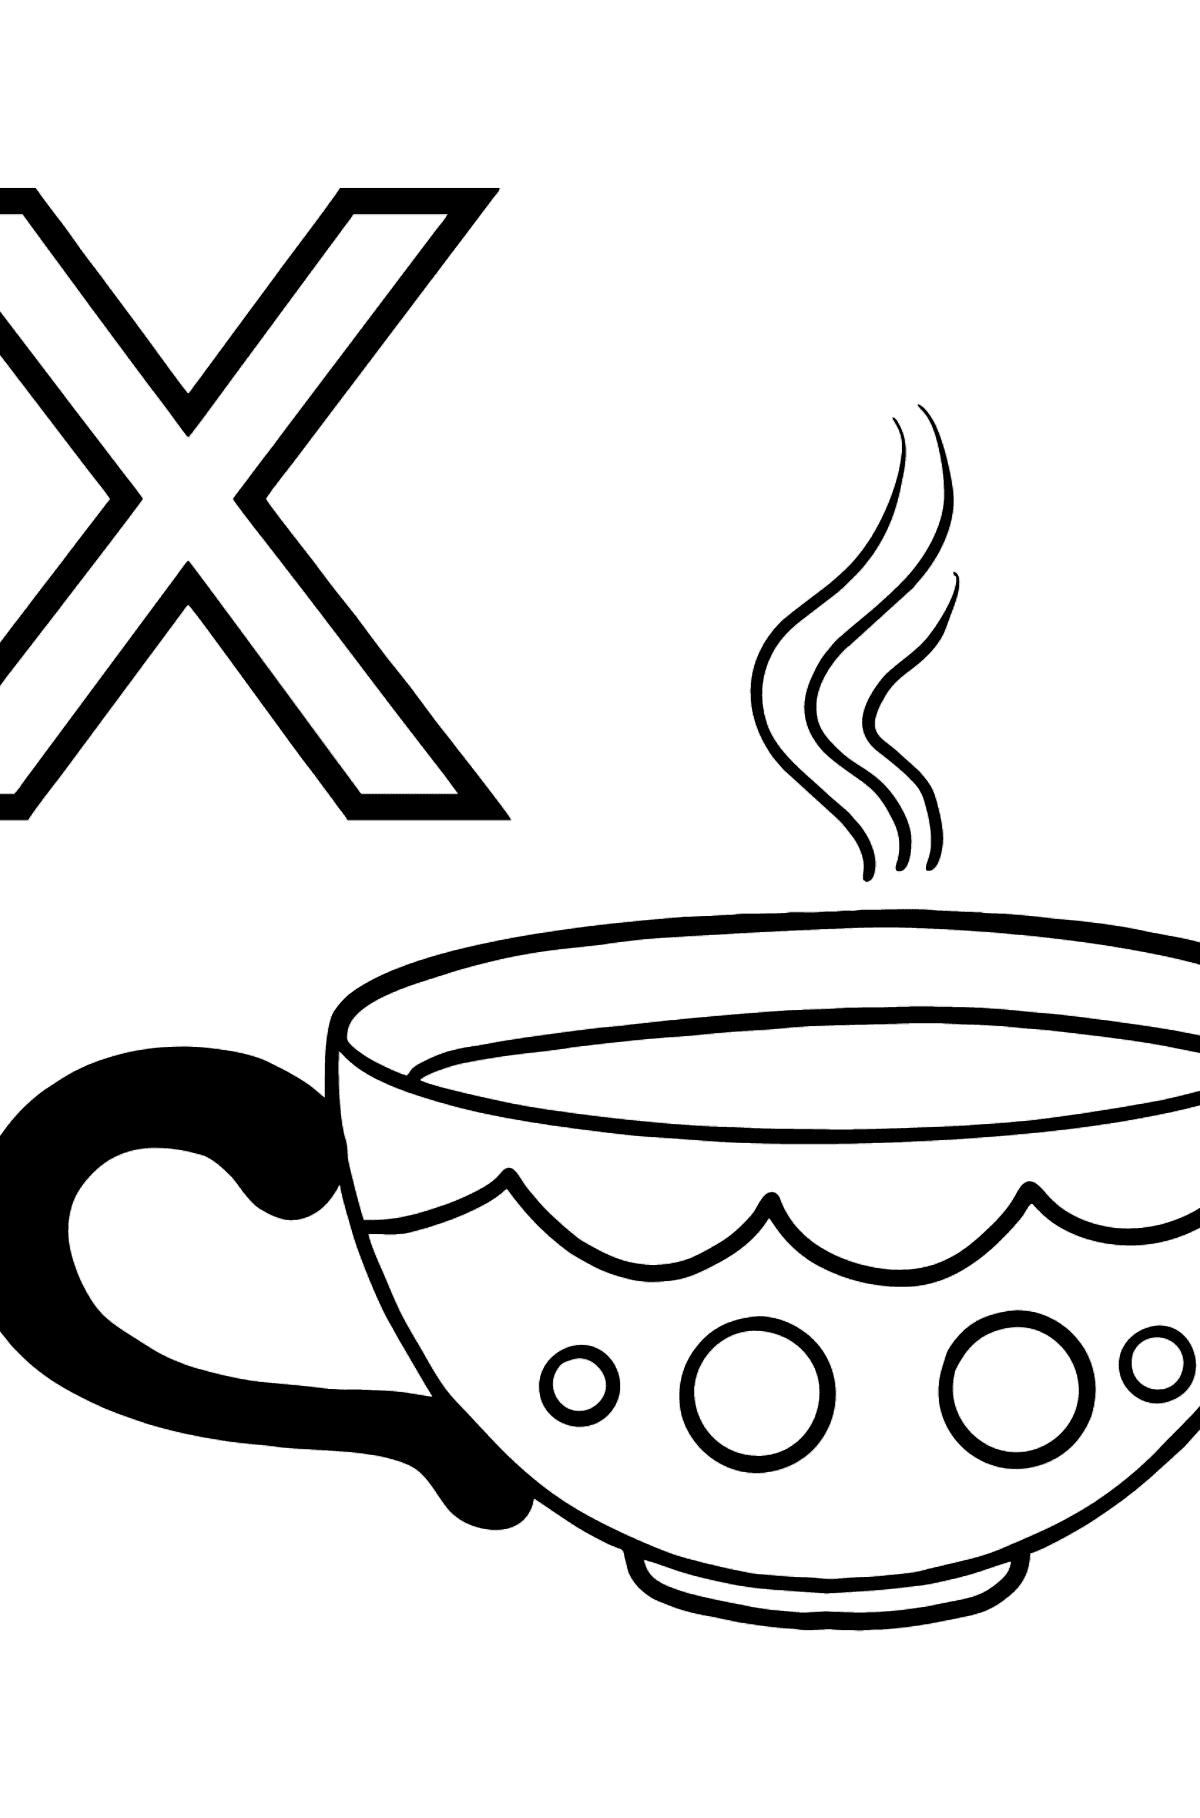 Portuguese Letter X coloring pages - XÍCARA - Coloring Pages for Kids